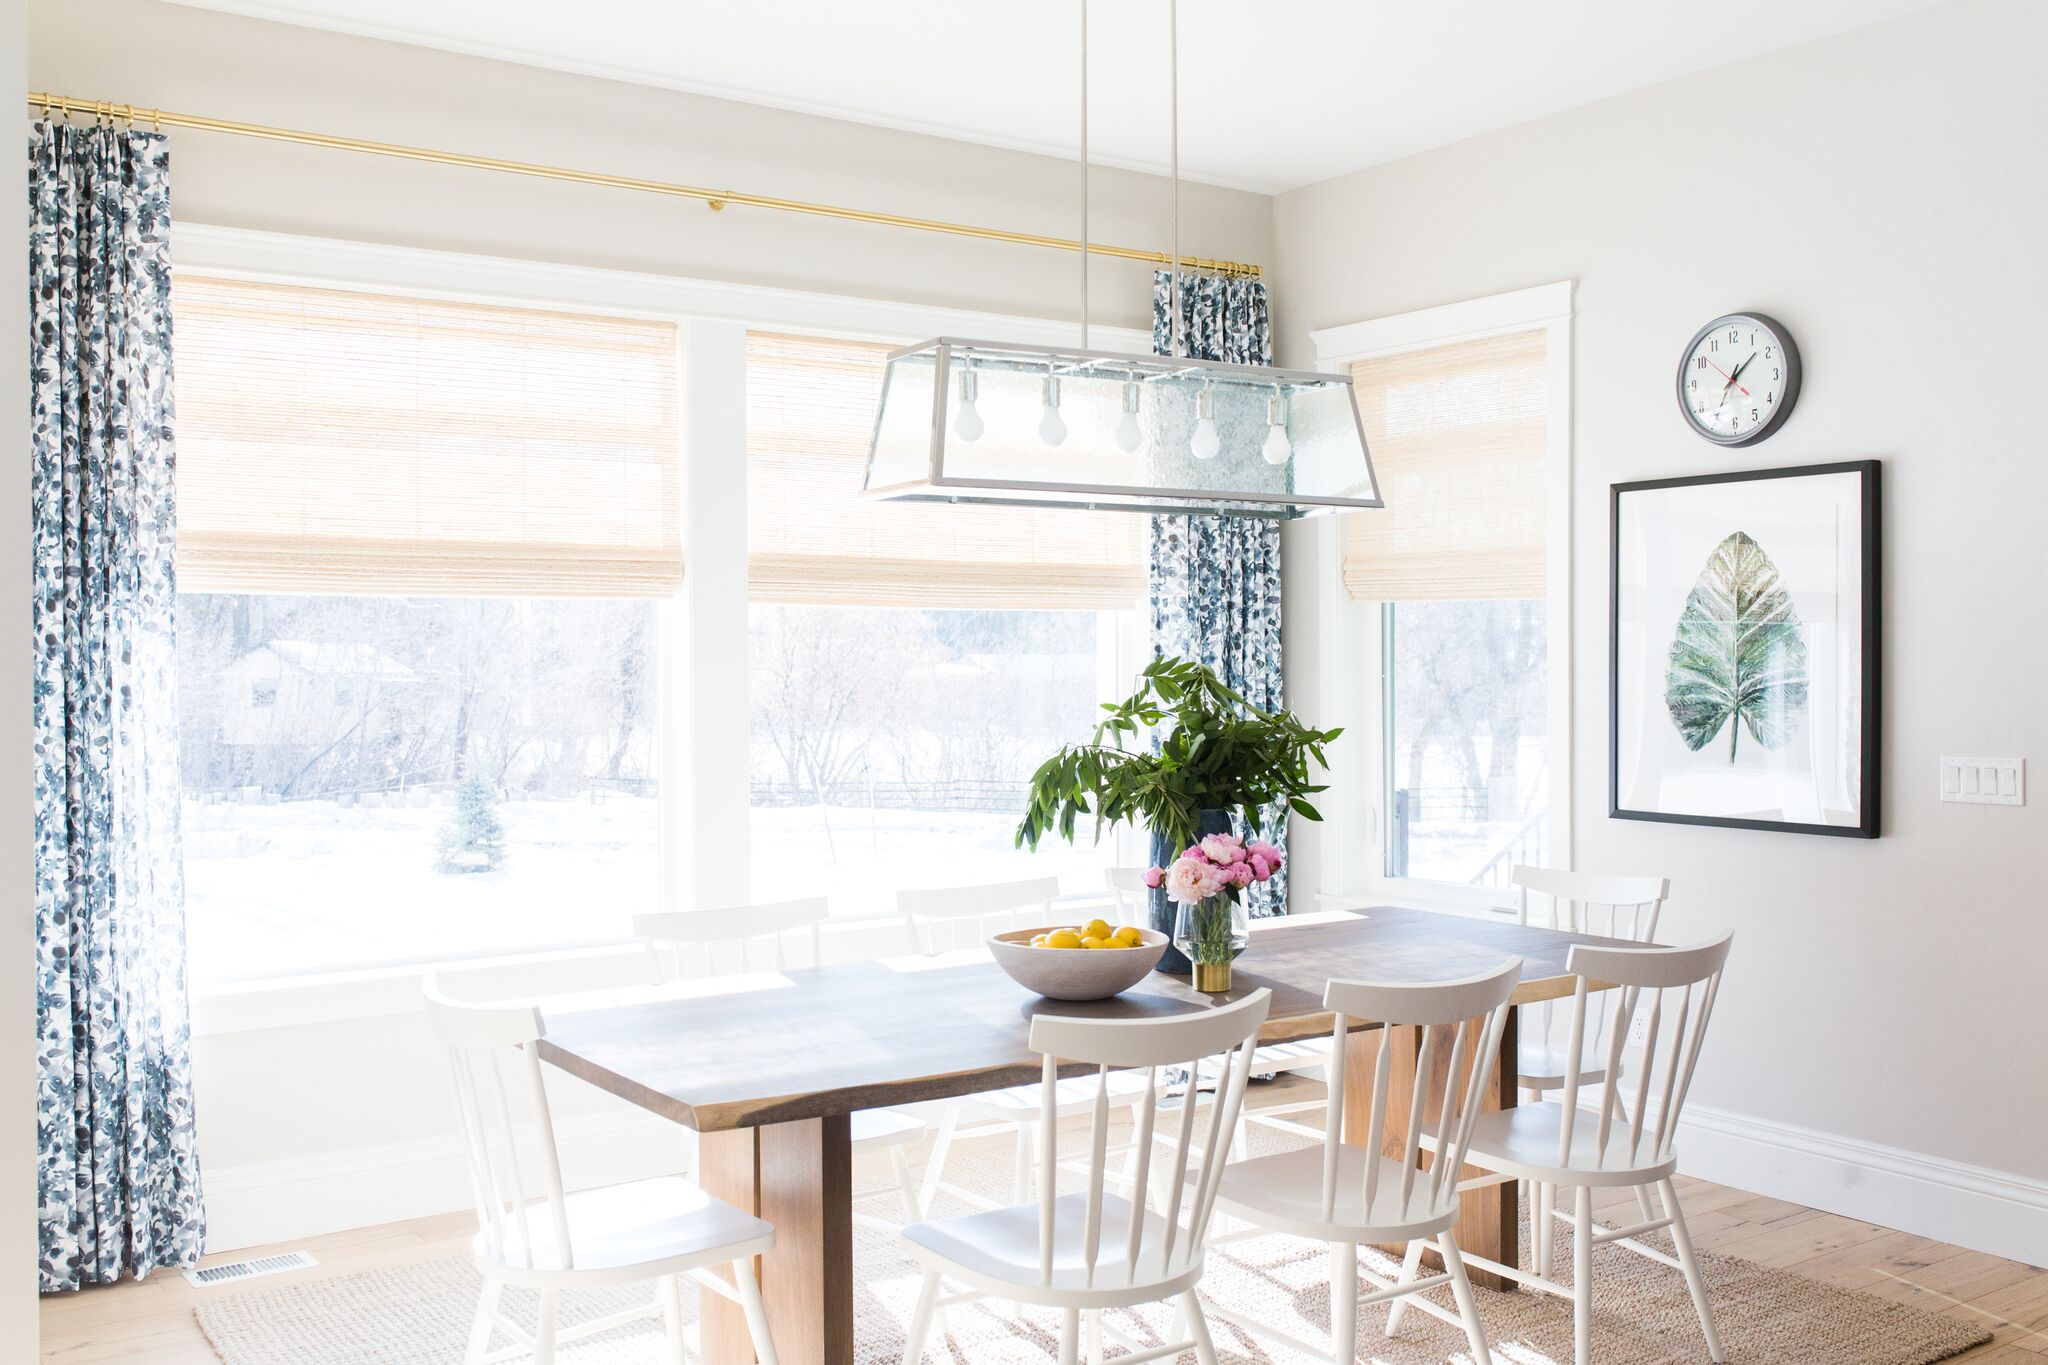 Wooden kitchen table with white kitchen chairs